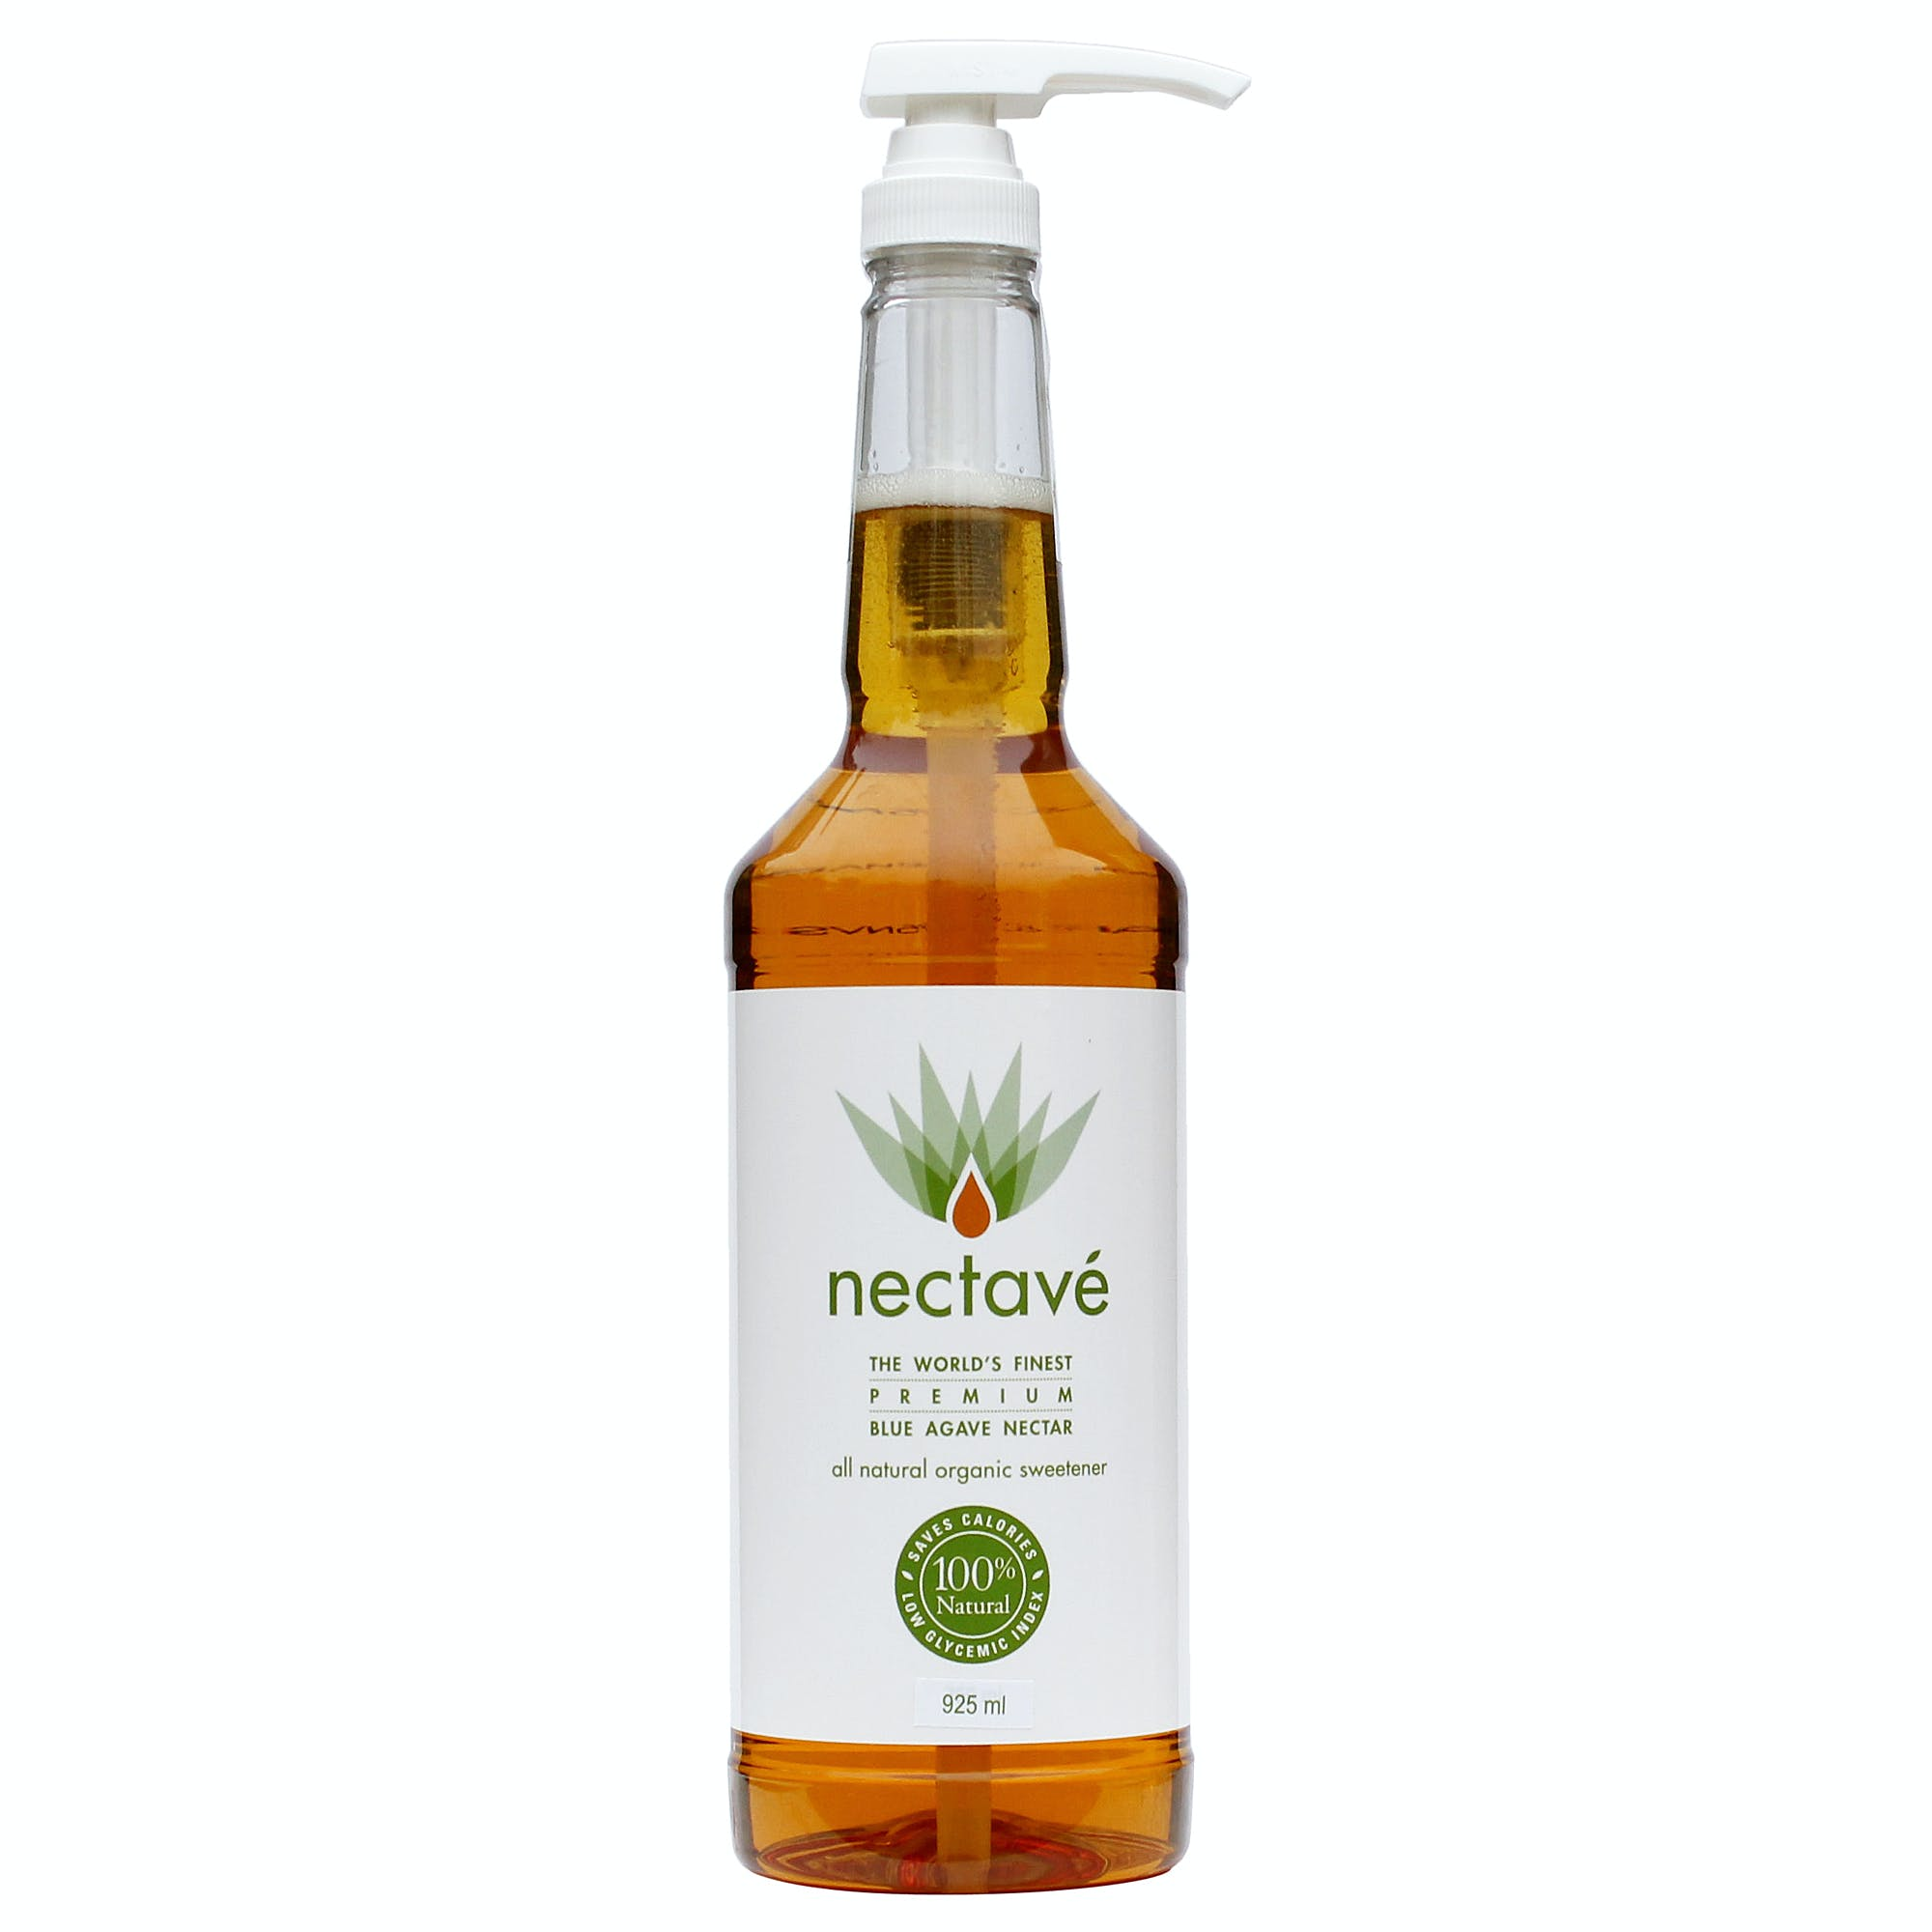 Organic Agave Nectar Pump Top Agave sweetener sold by M5 Corporation